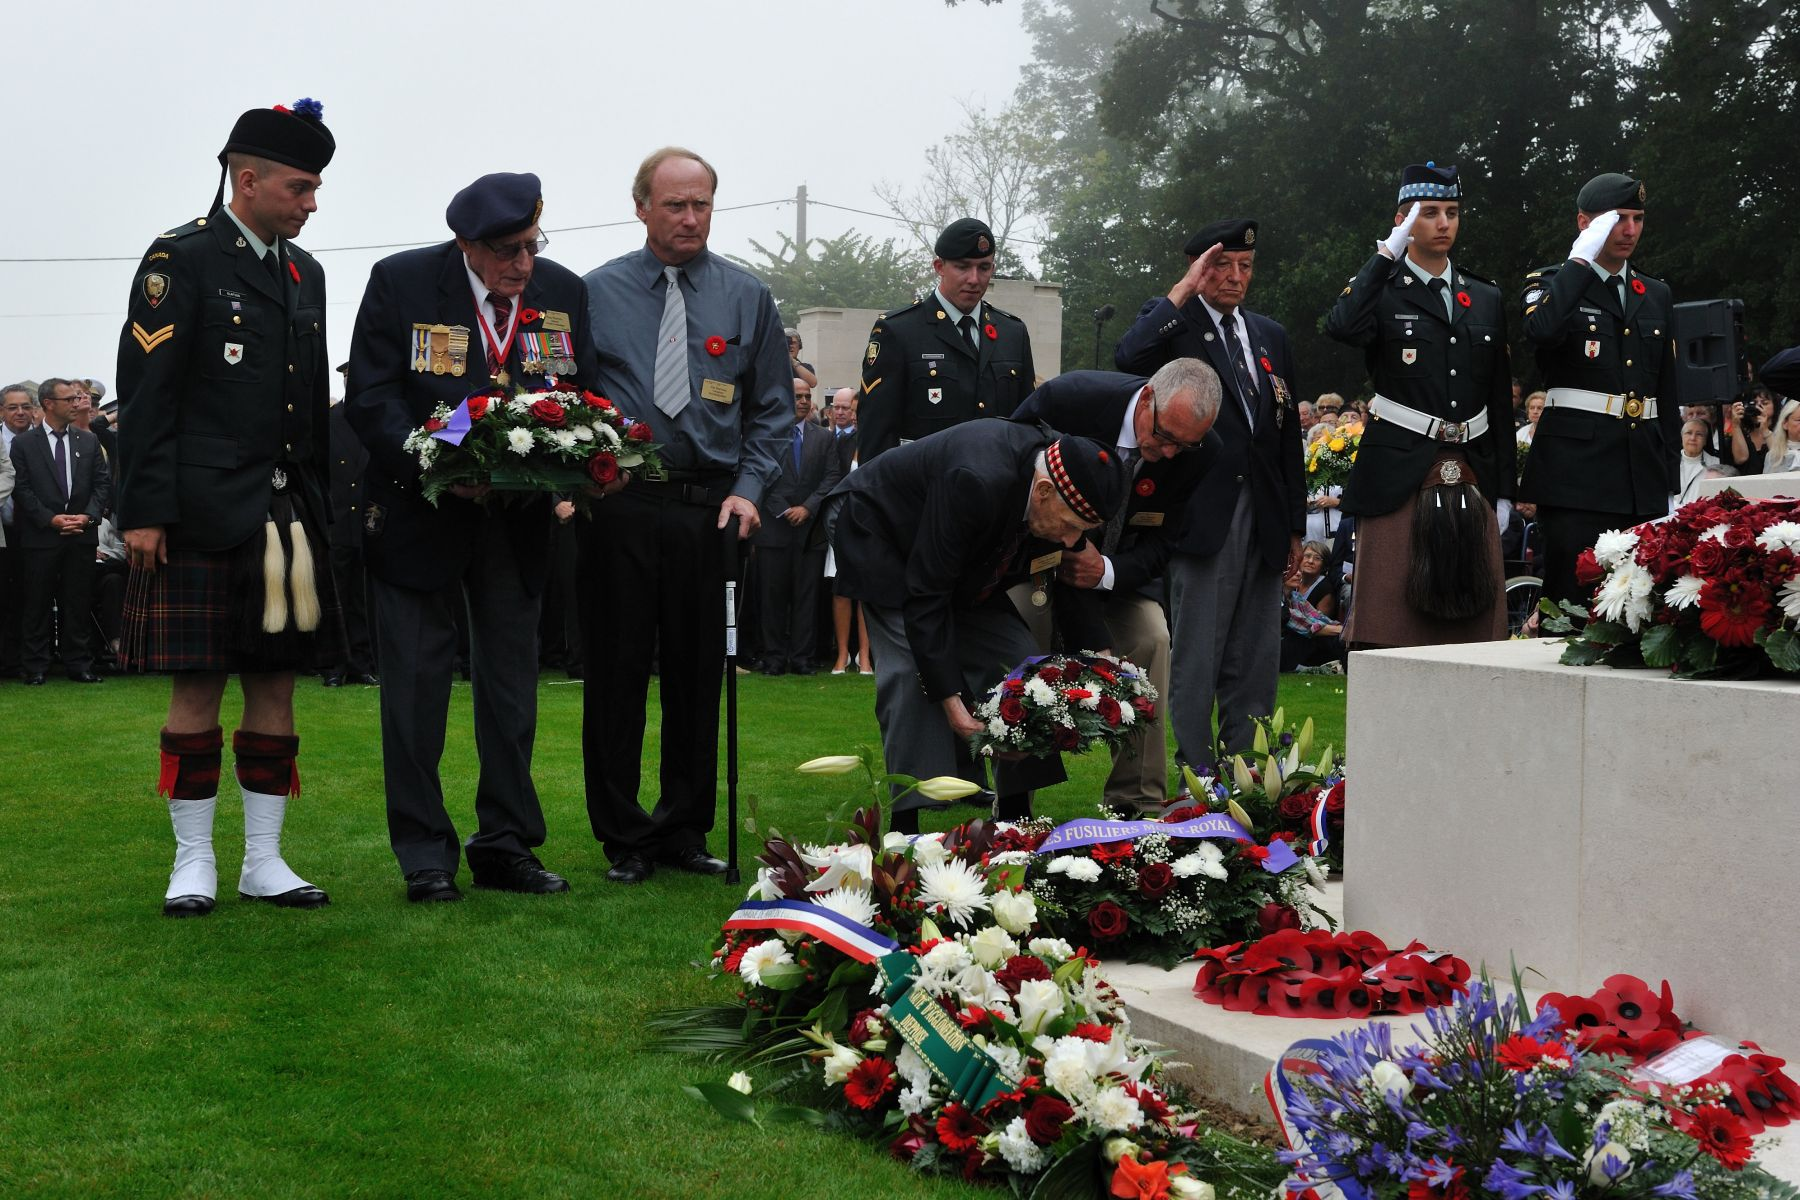 An event commemorating the Dieppe Raid is held at the Dieppe Canadian War Cemetery each year.